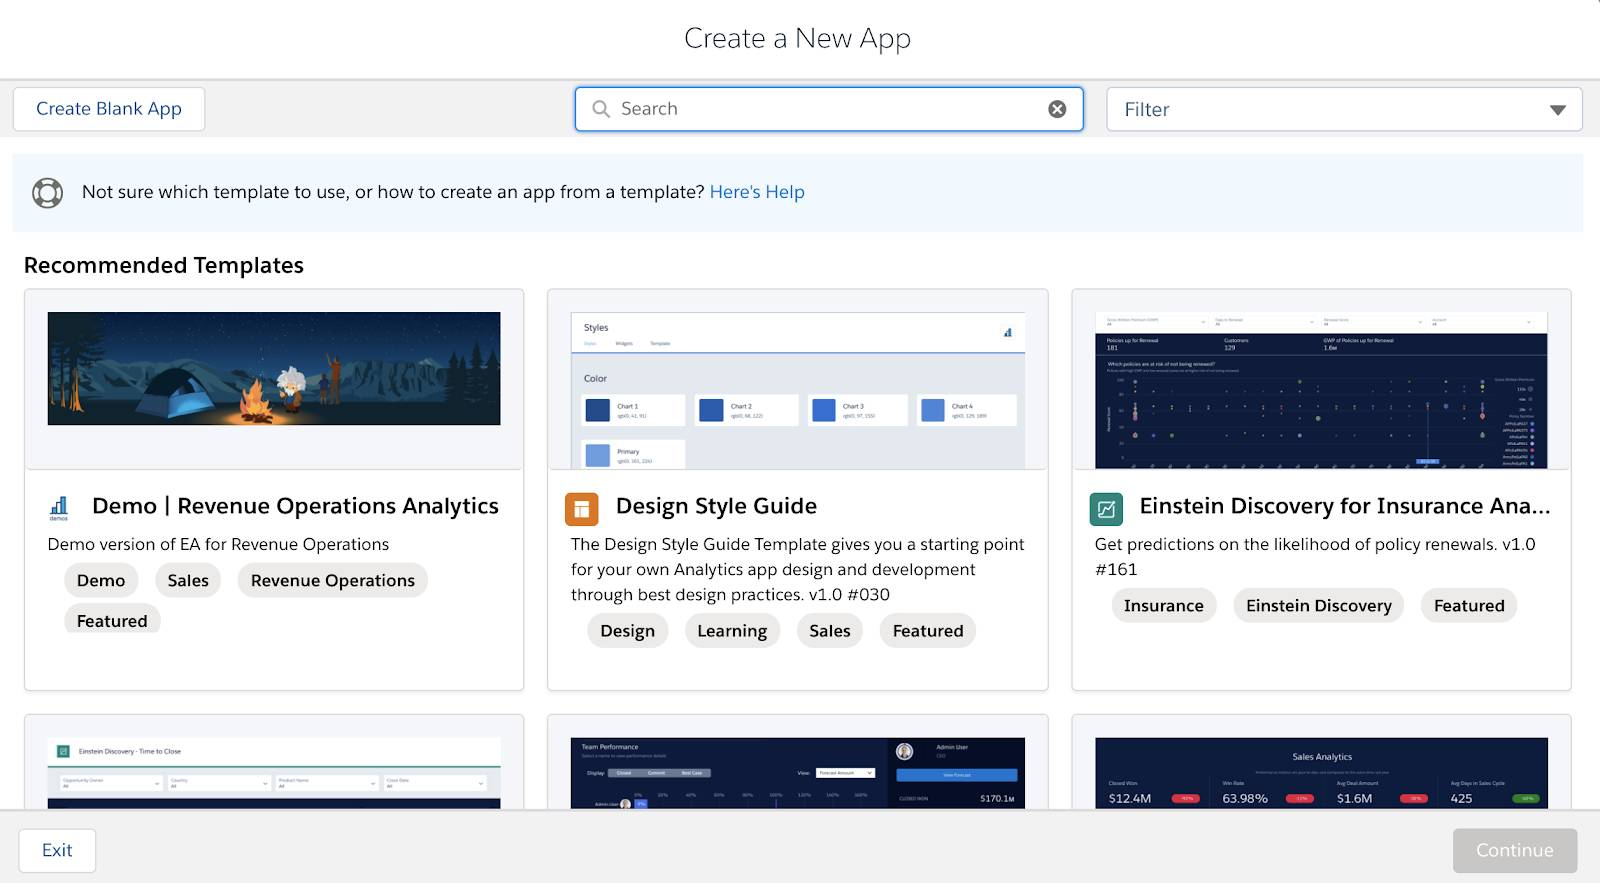 Create a New App Dashboard.